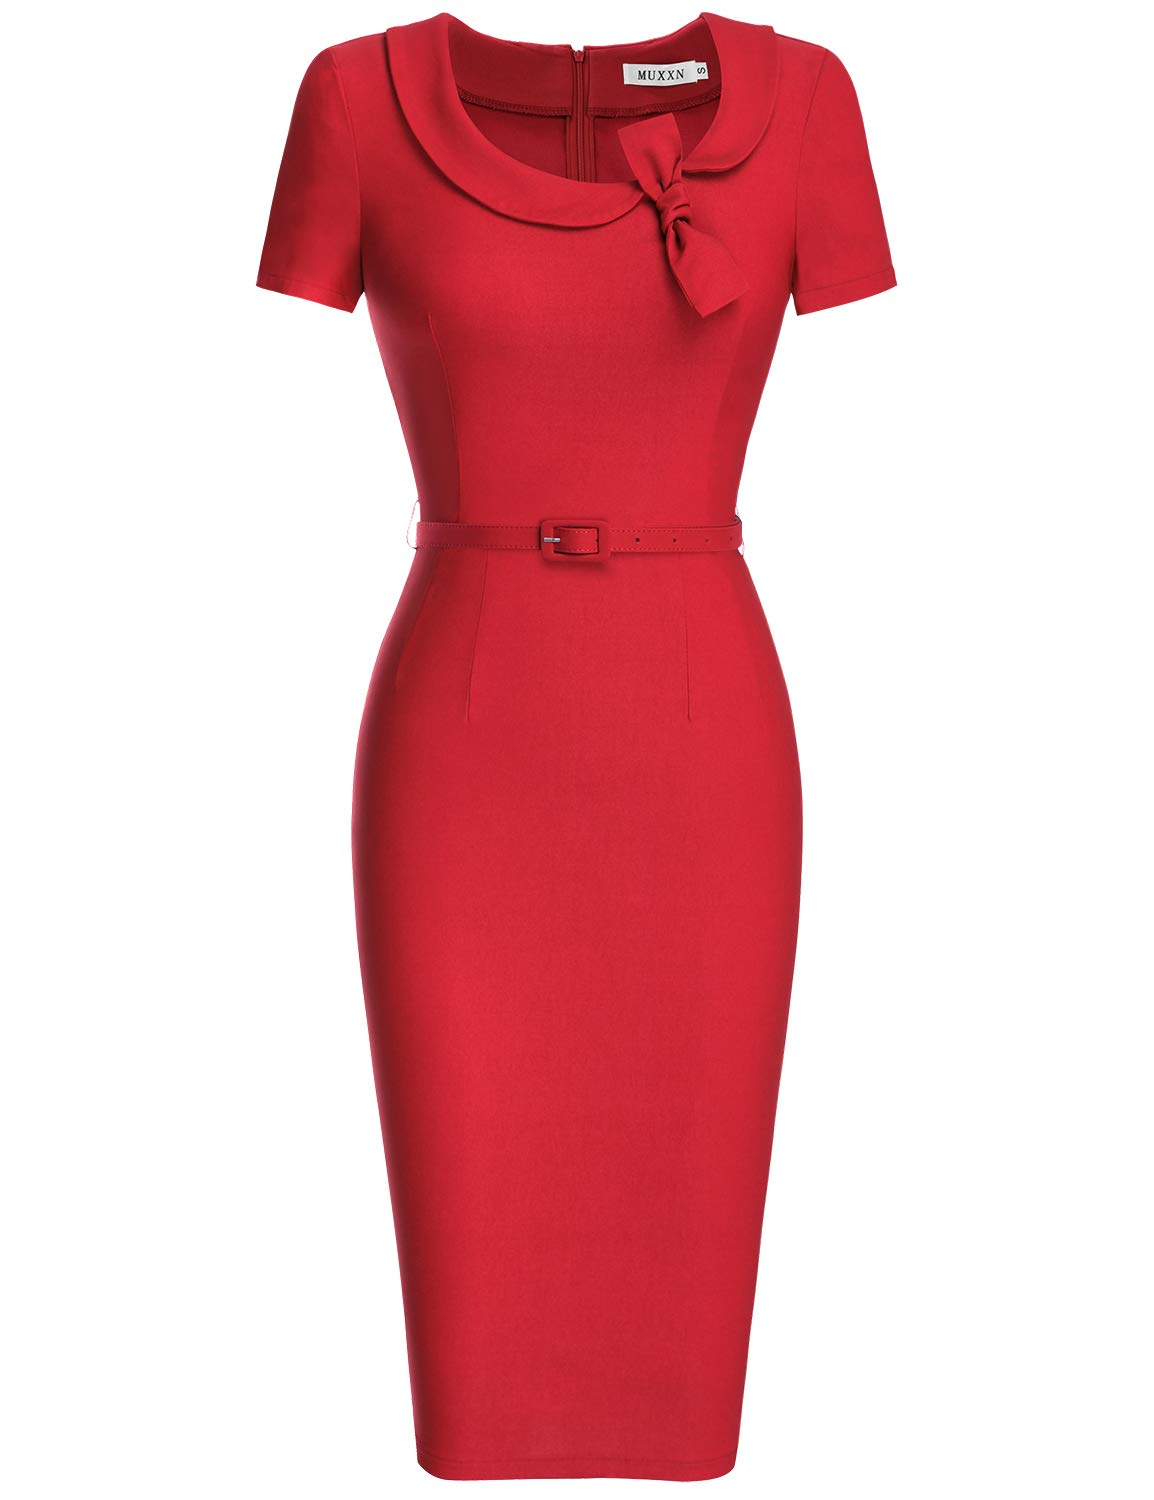 MUXXN Women's Hollow Out Neck Belt Bodycon Pin Up Style Vintage Dress (XXL Red)